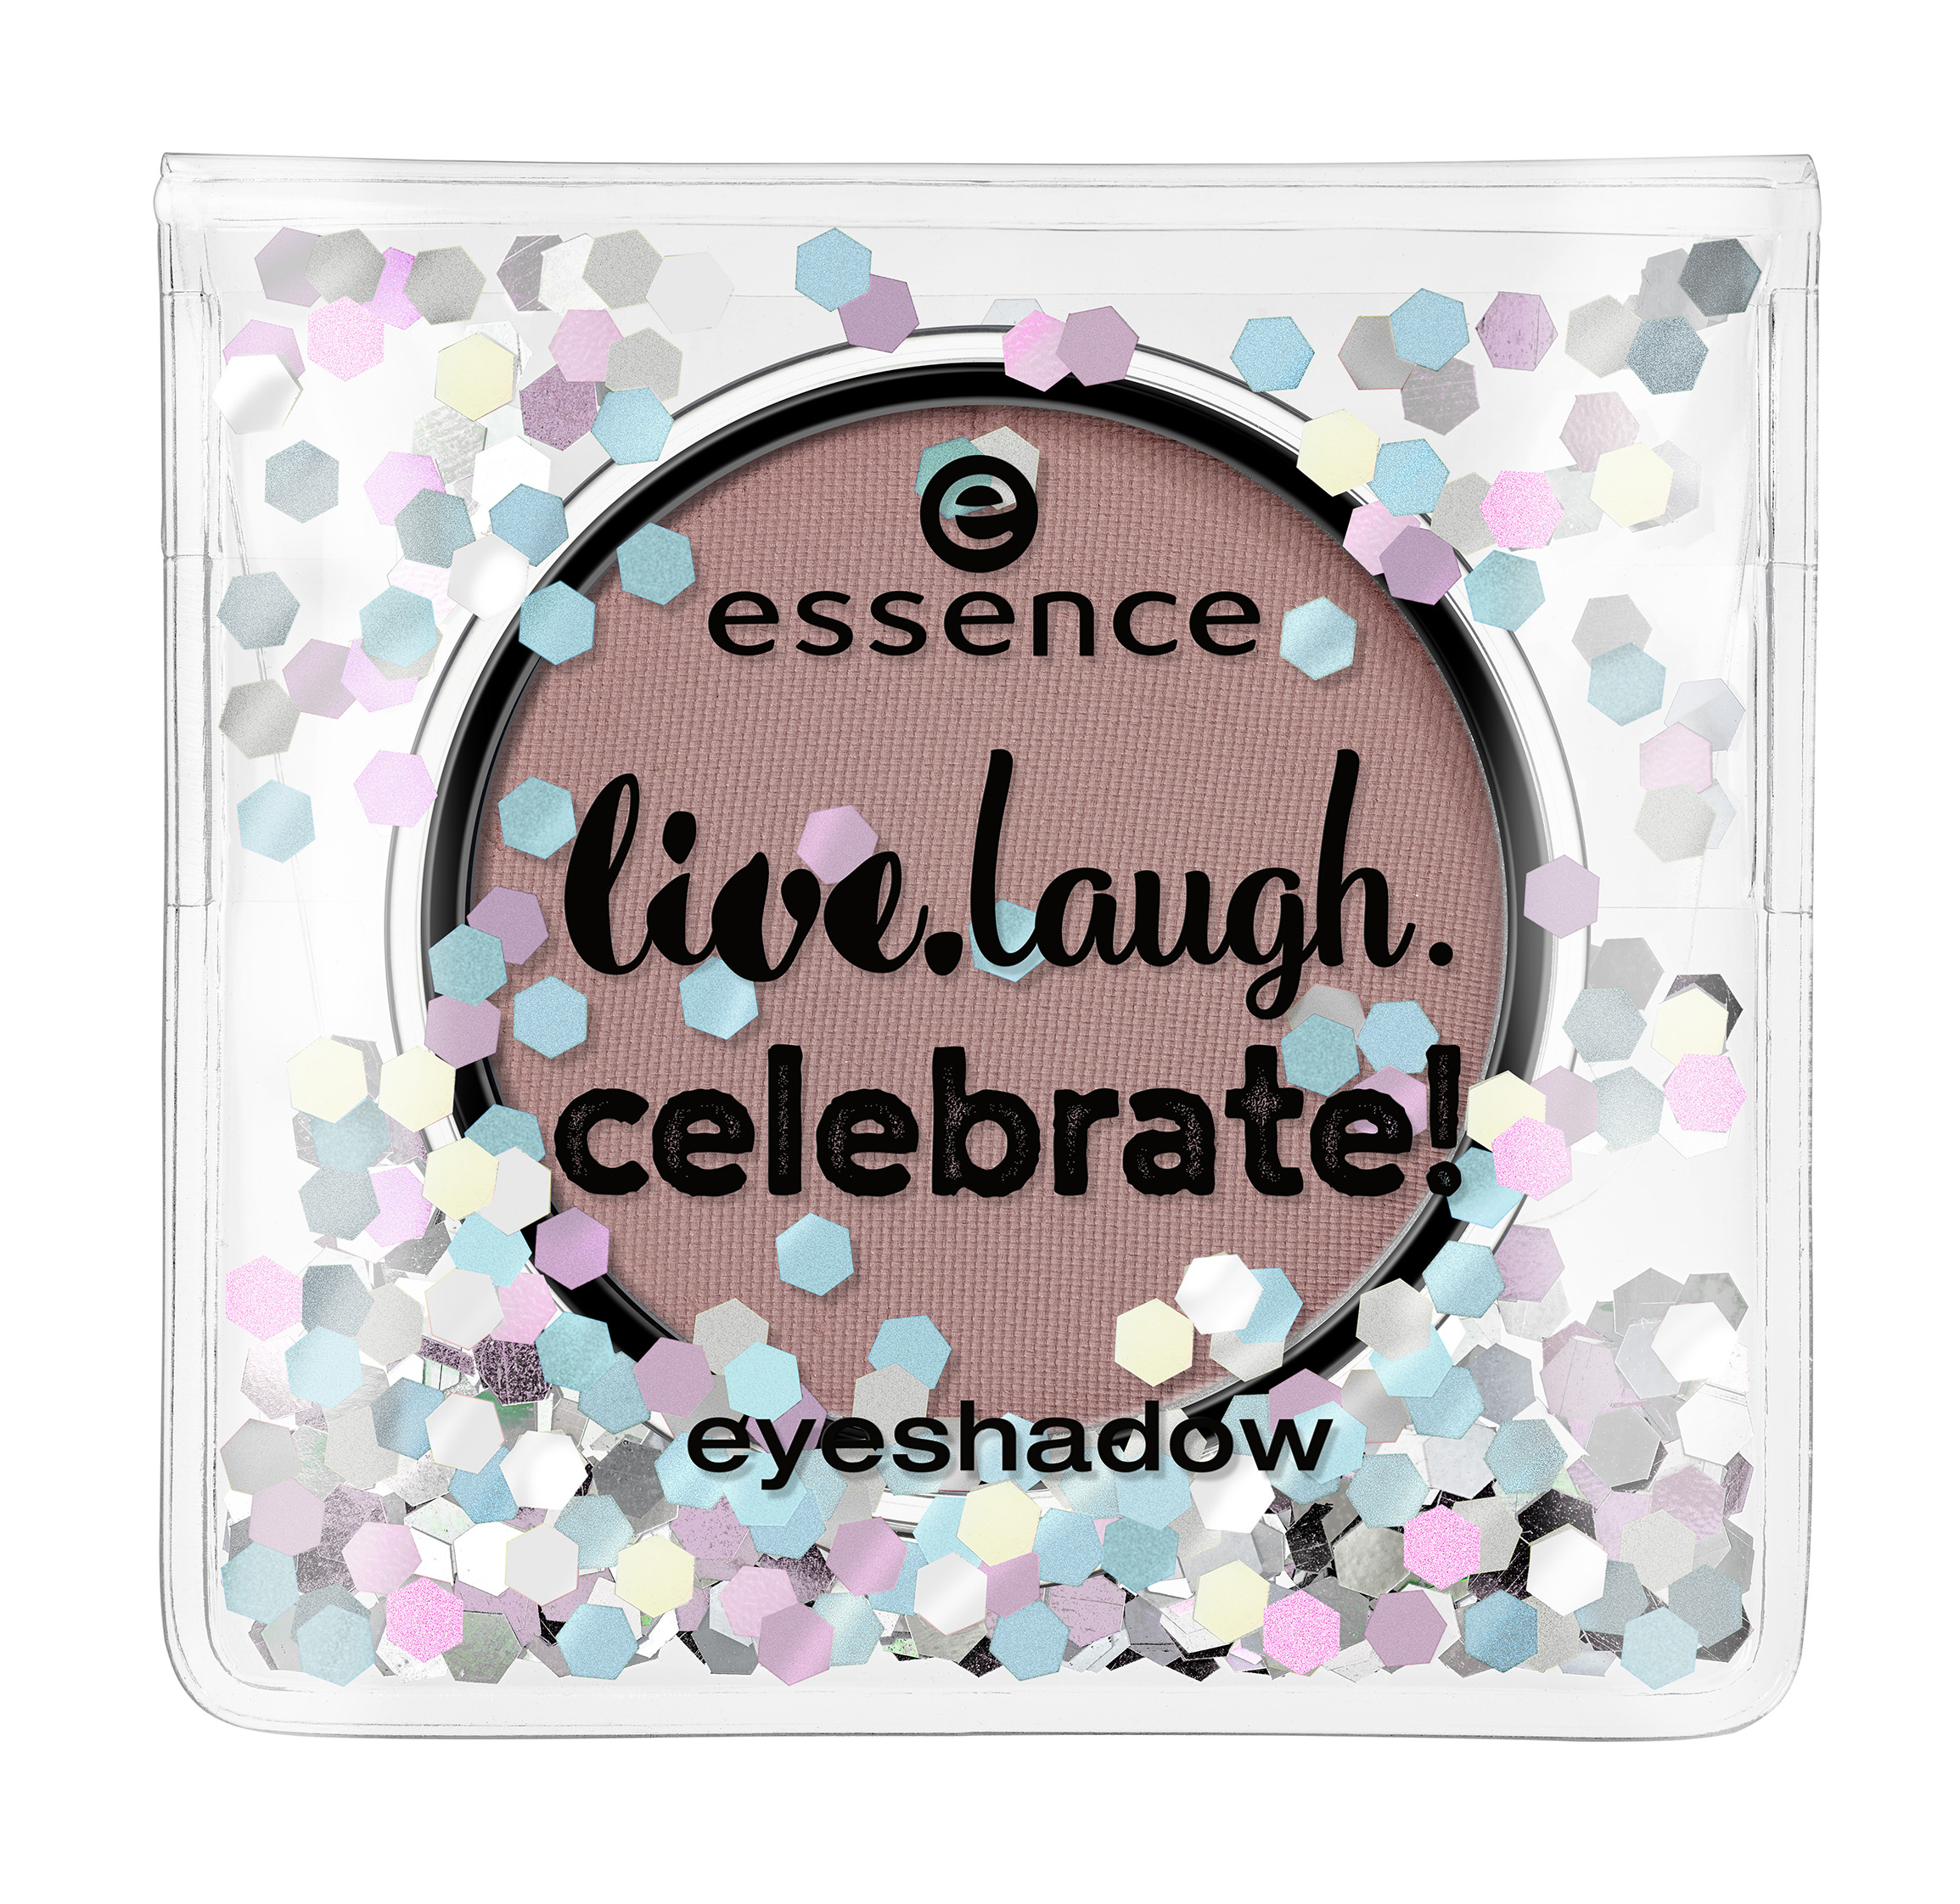 essence live.laugh.celebrate! eyeshadow 05